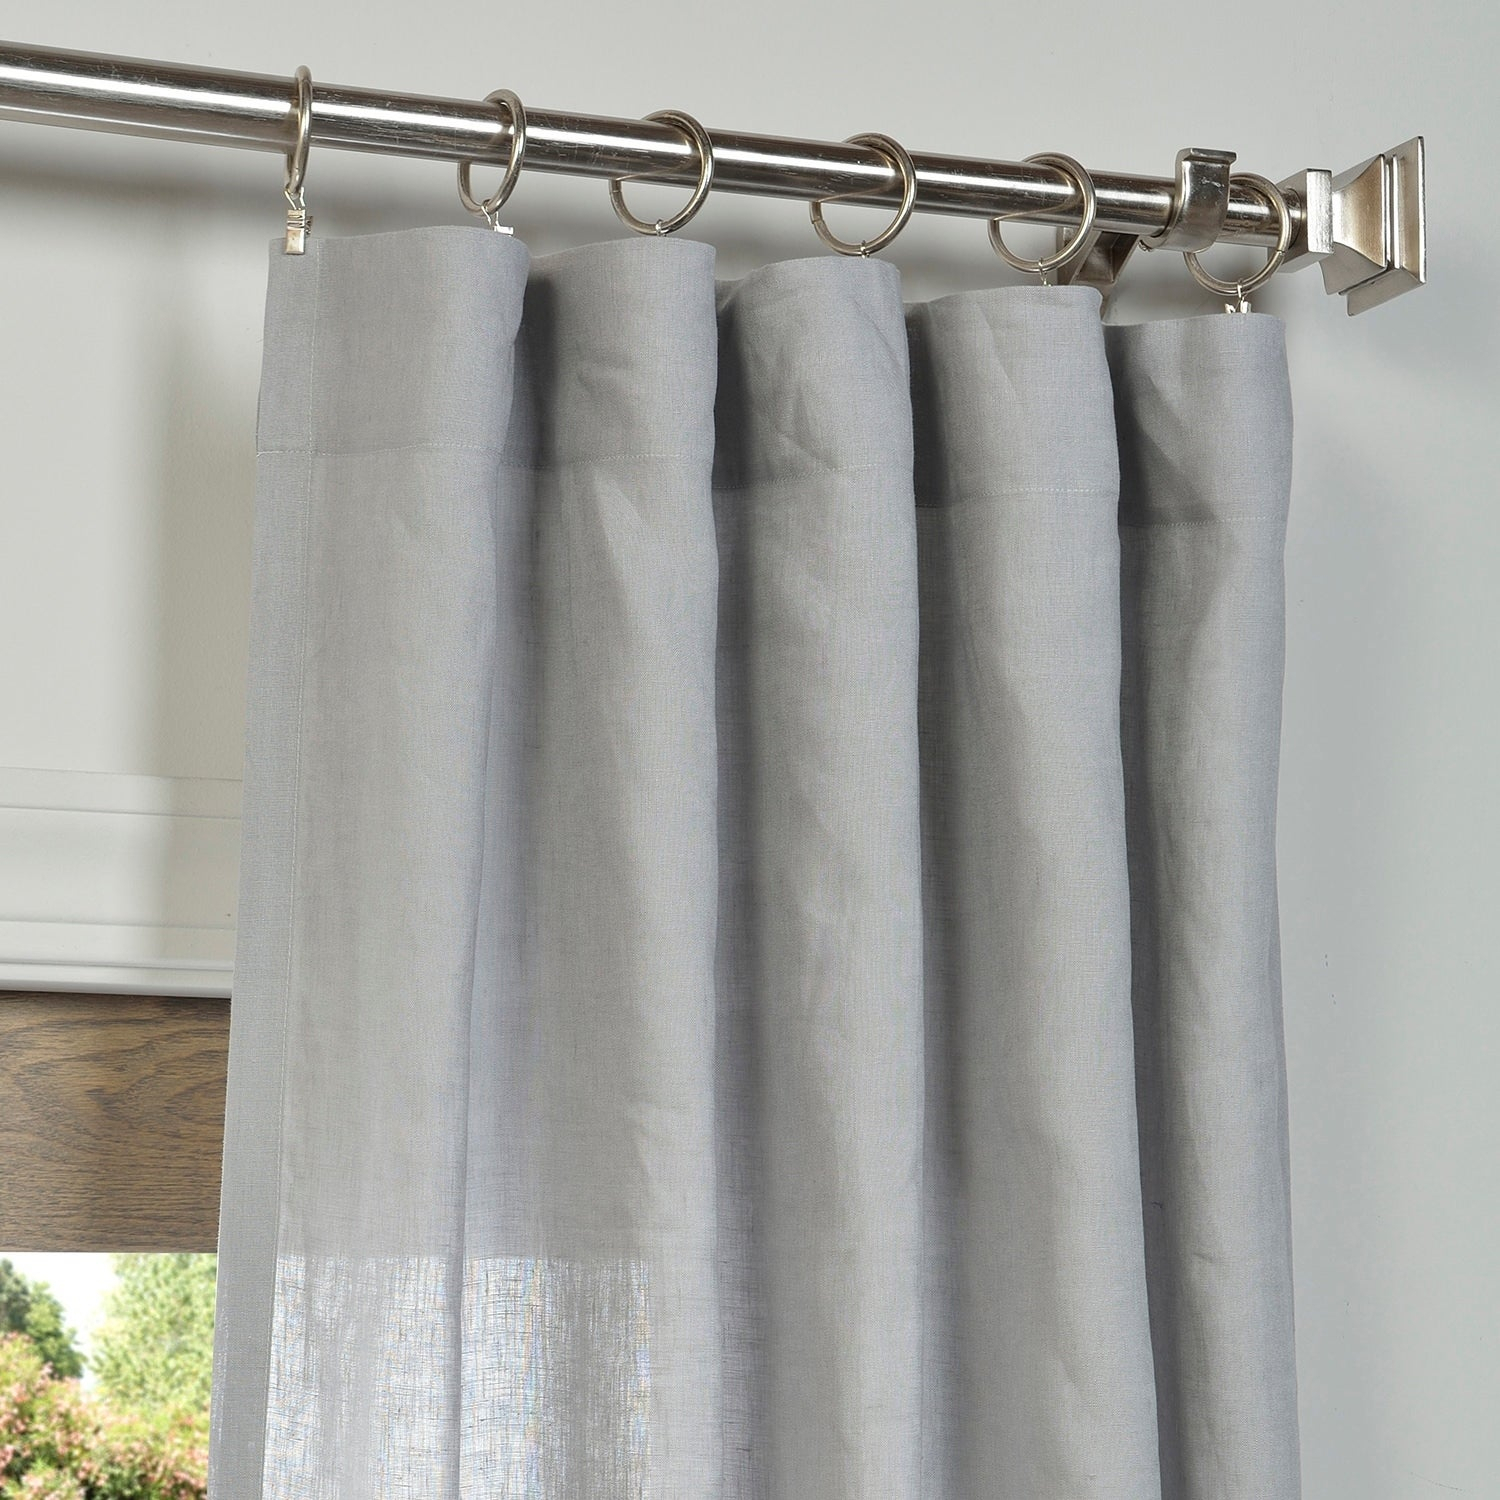 Exclusive Fabrics Signature French Linen Curtain Panel Intended For Signature French Linen Curtain Panels (View 17 of 30)